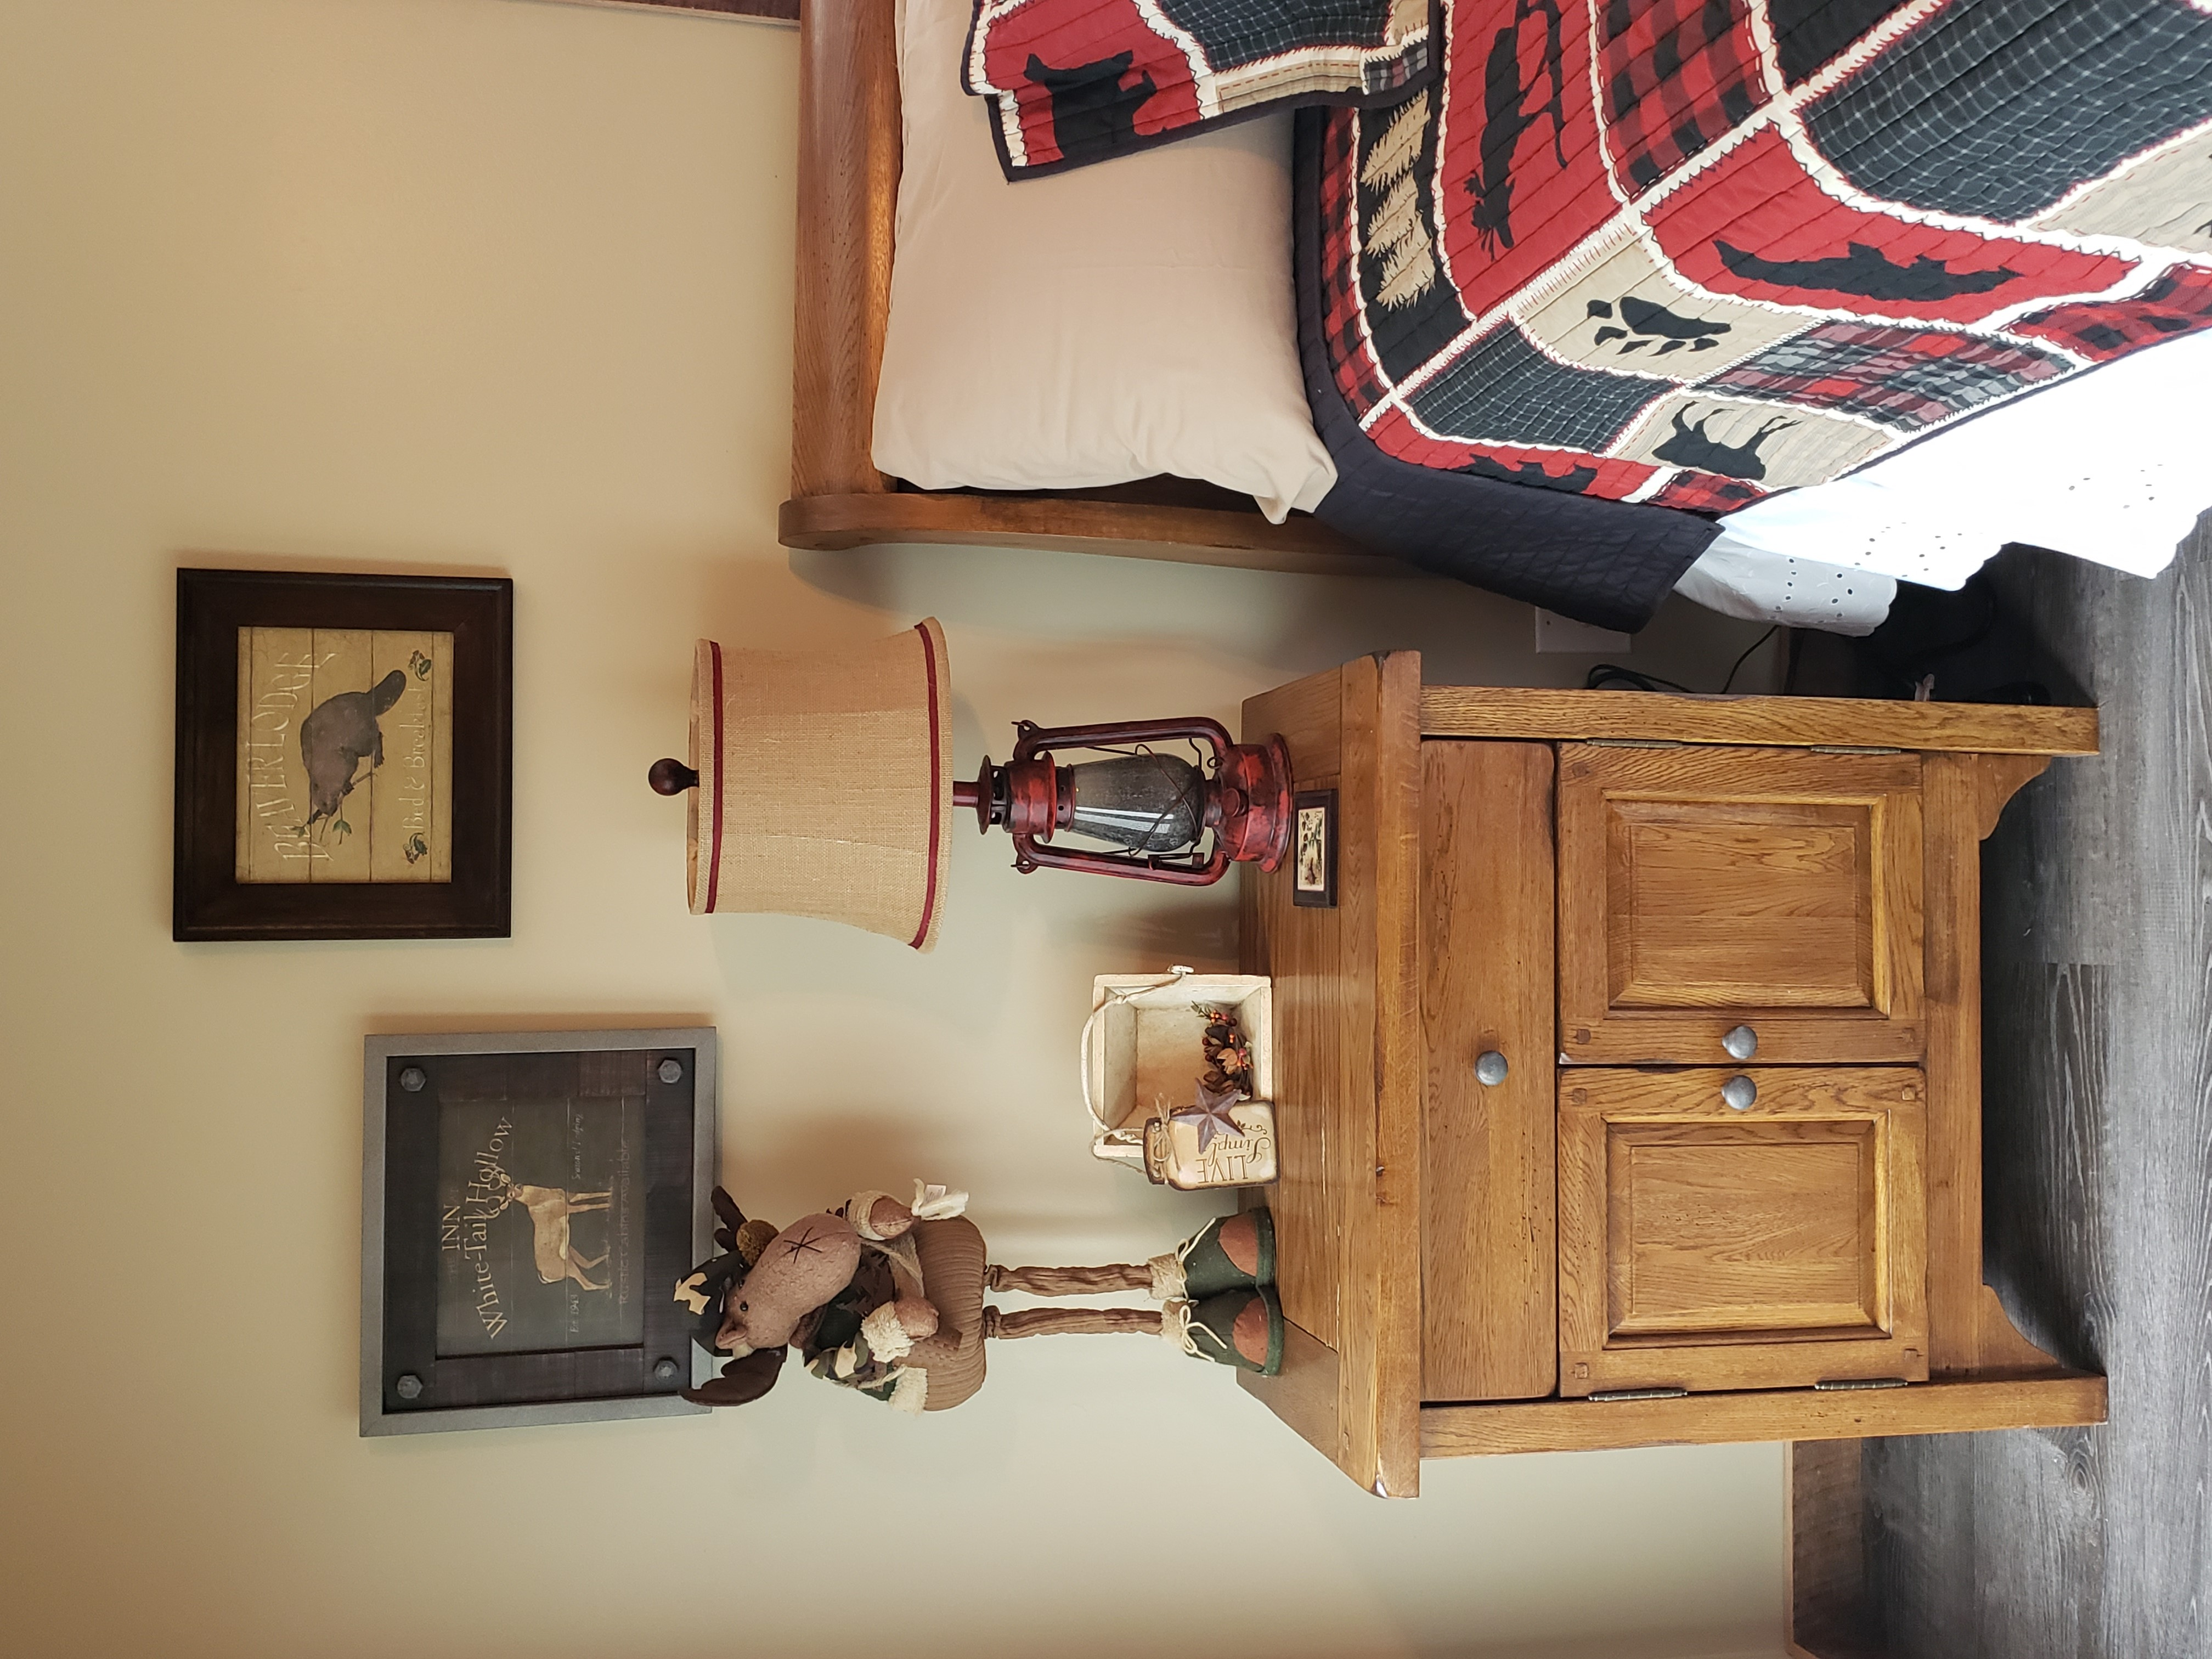 Bedside table with lantern lamp